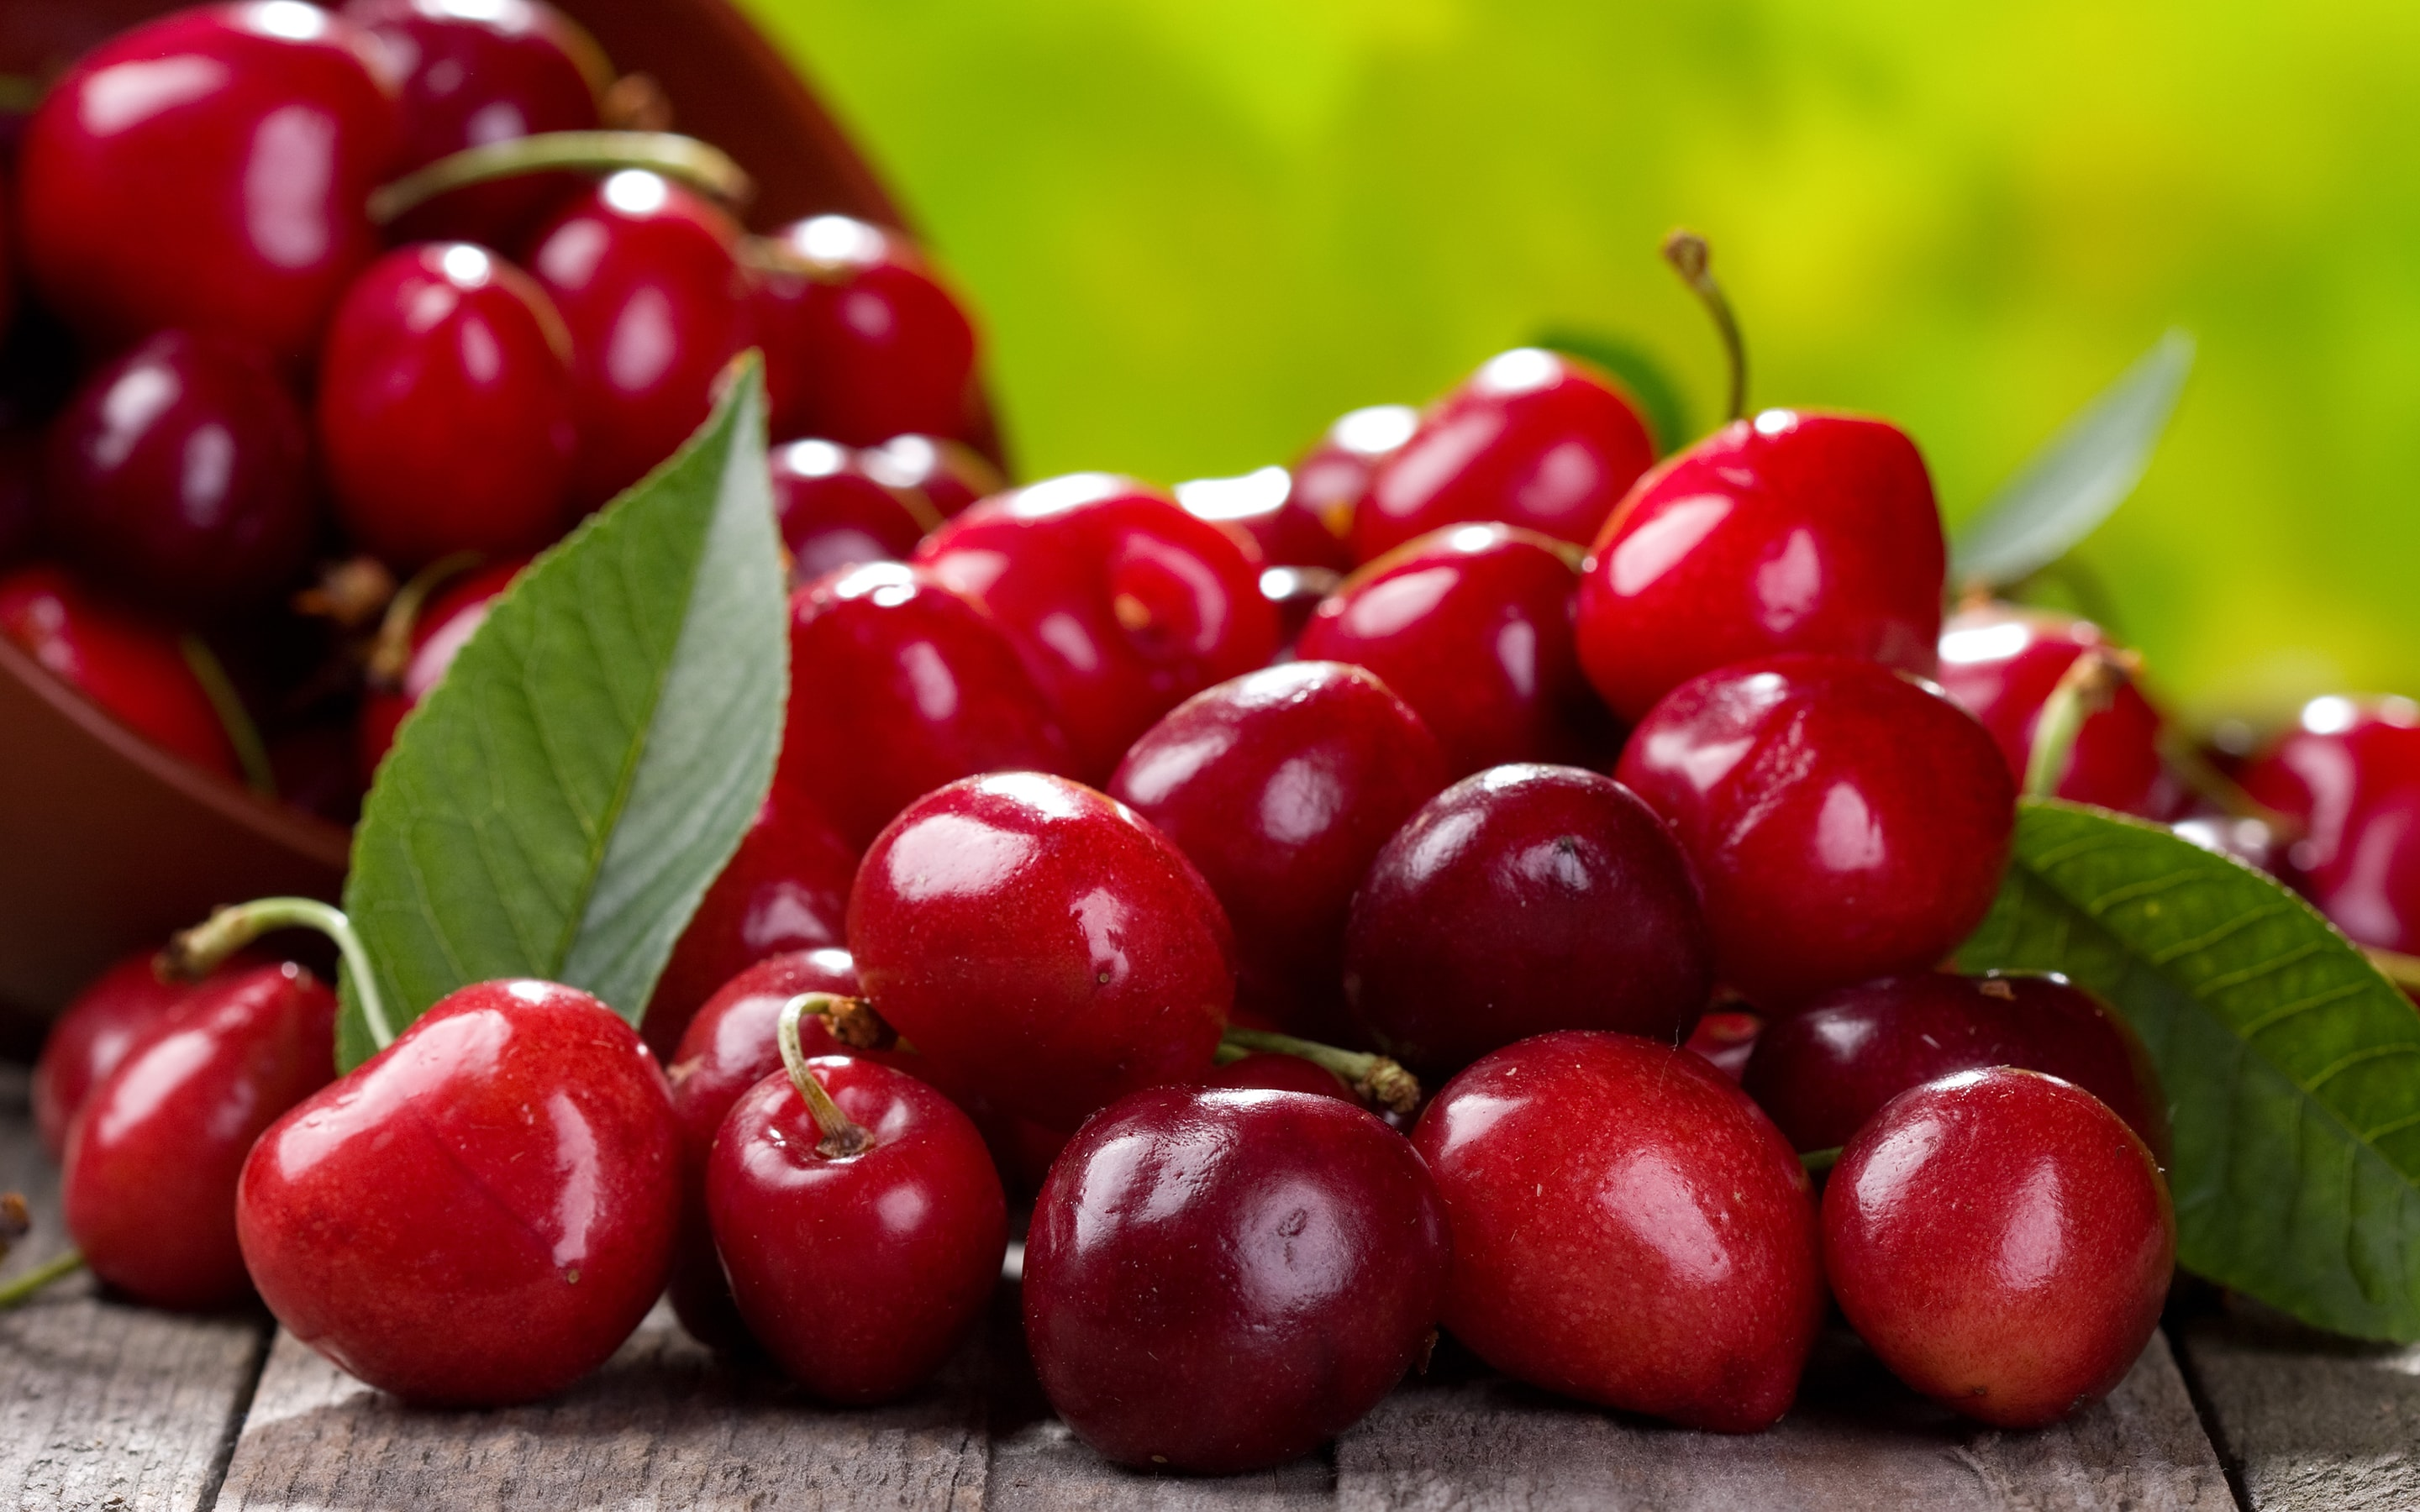 Cherry Desktop wallpapers